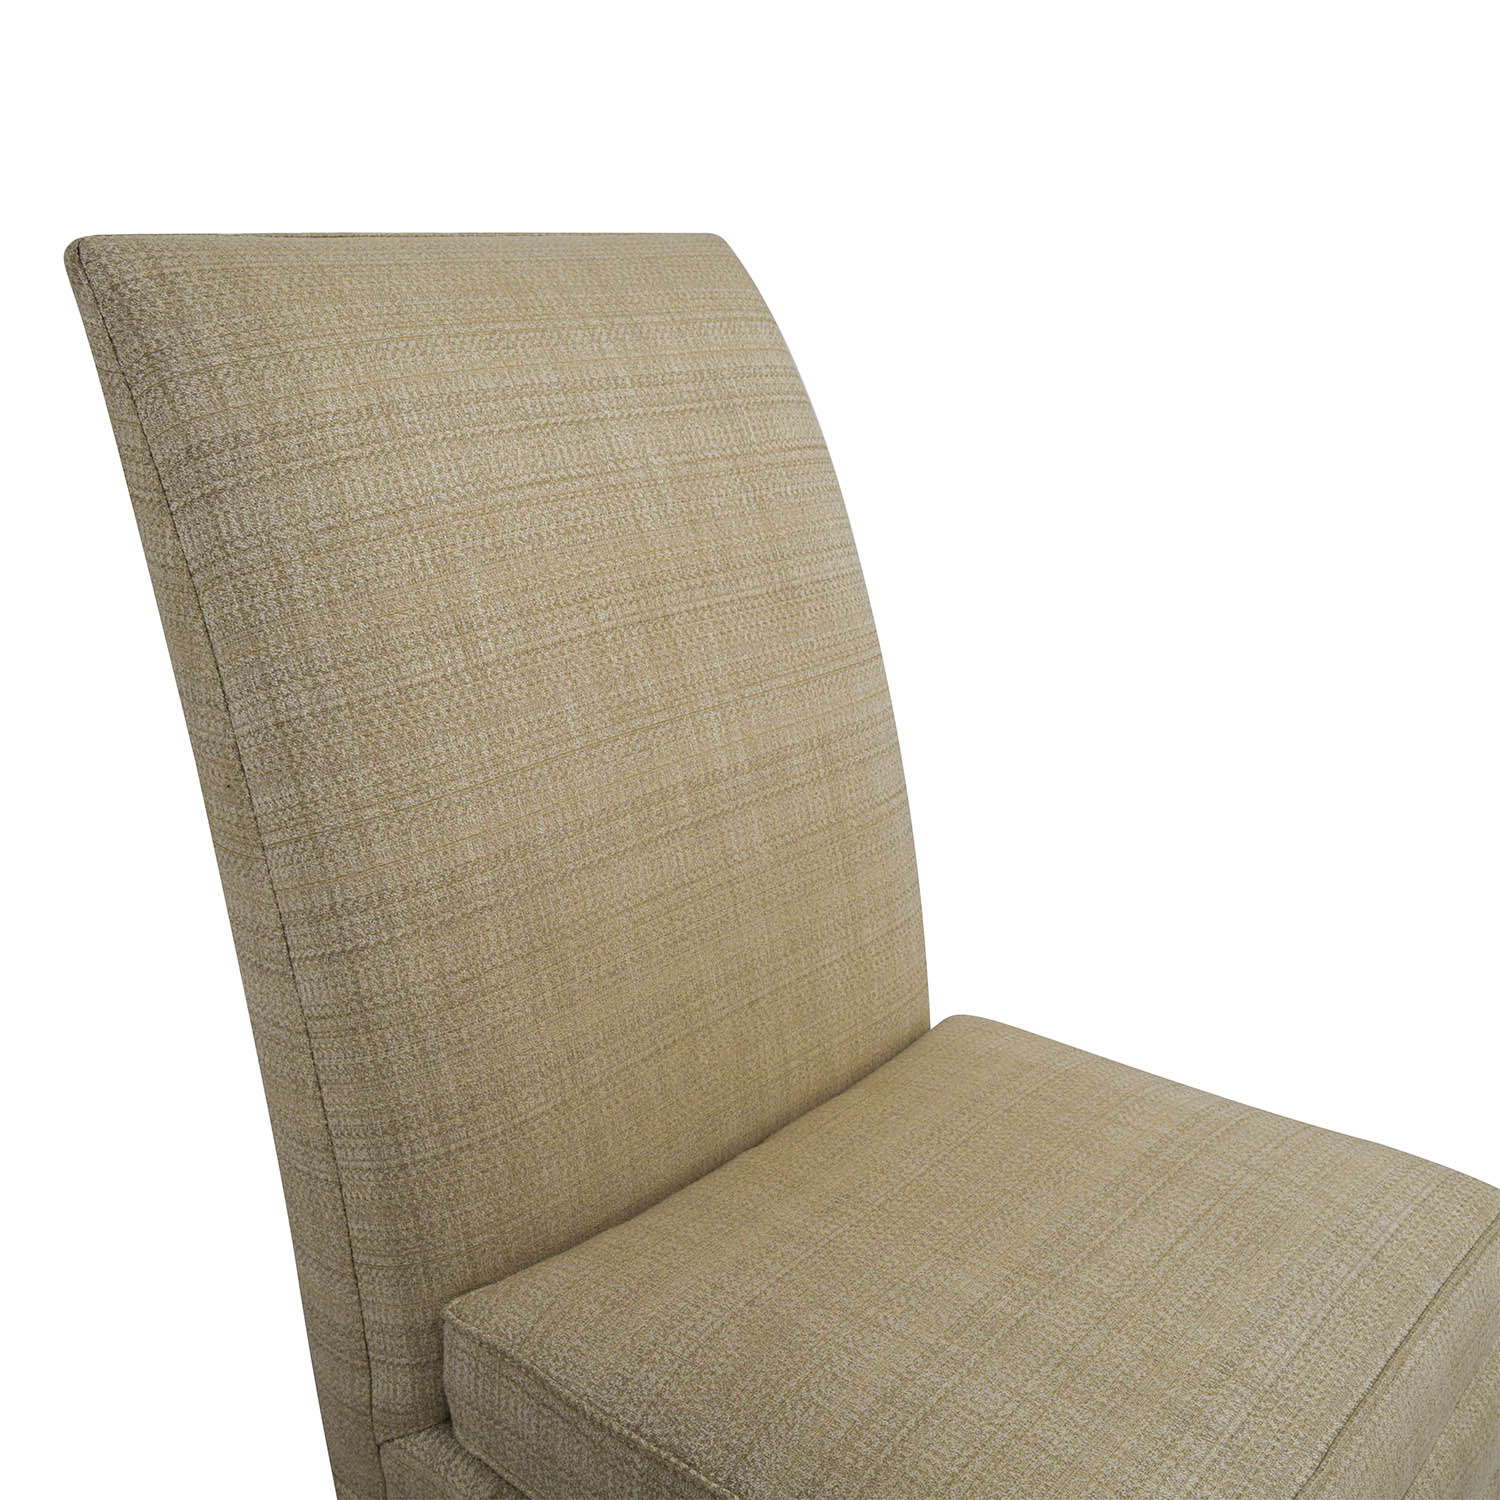 Bernhardt Bernhardt Beaumont Cream Accent Chair Chairs